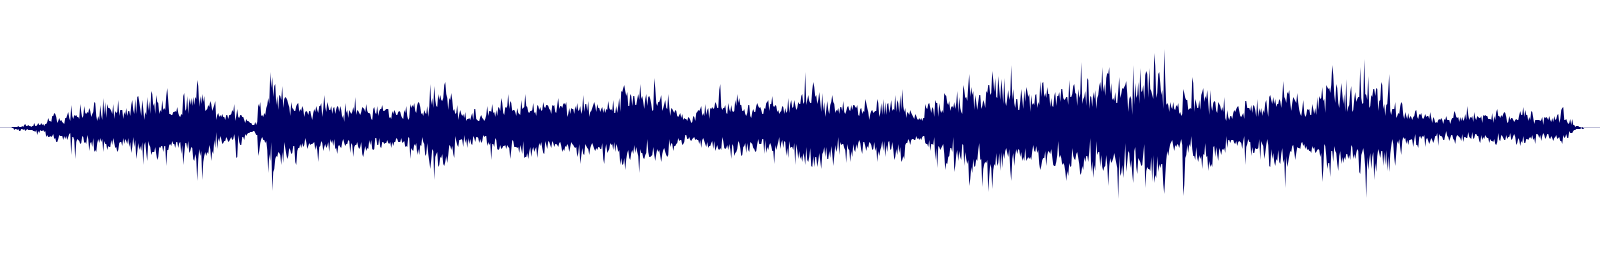 waveform of track #120039